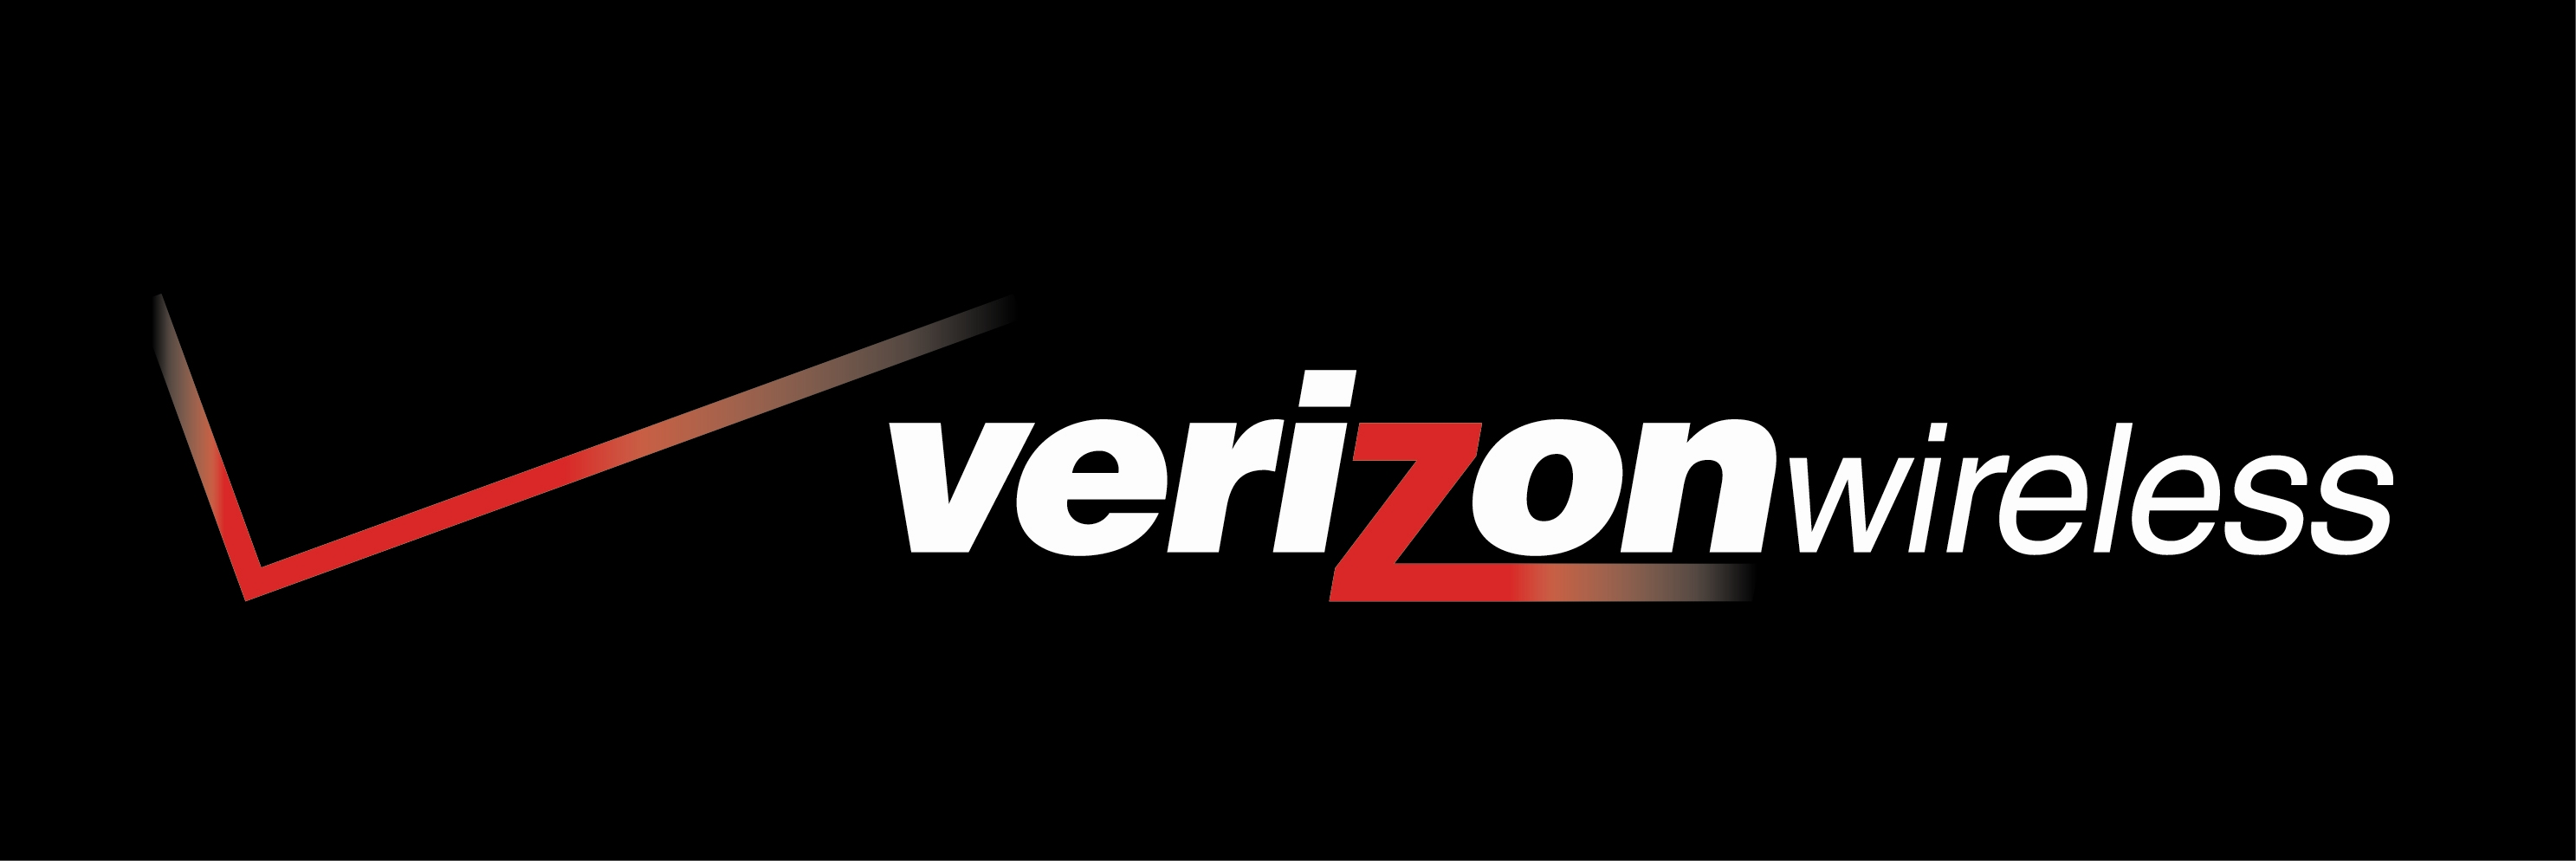 Exporting contacts from your phone with Verizon wireless to your ...